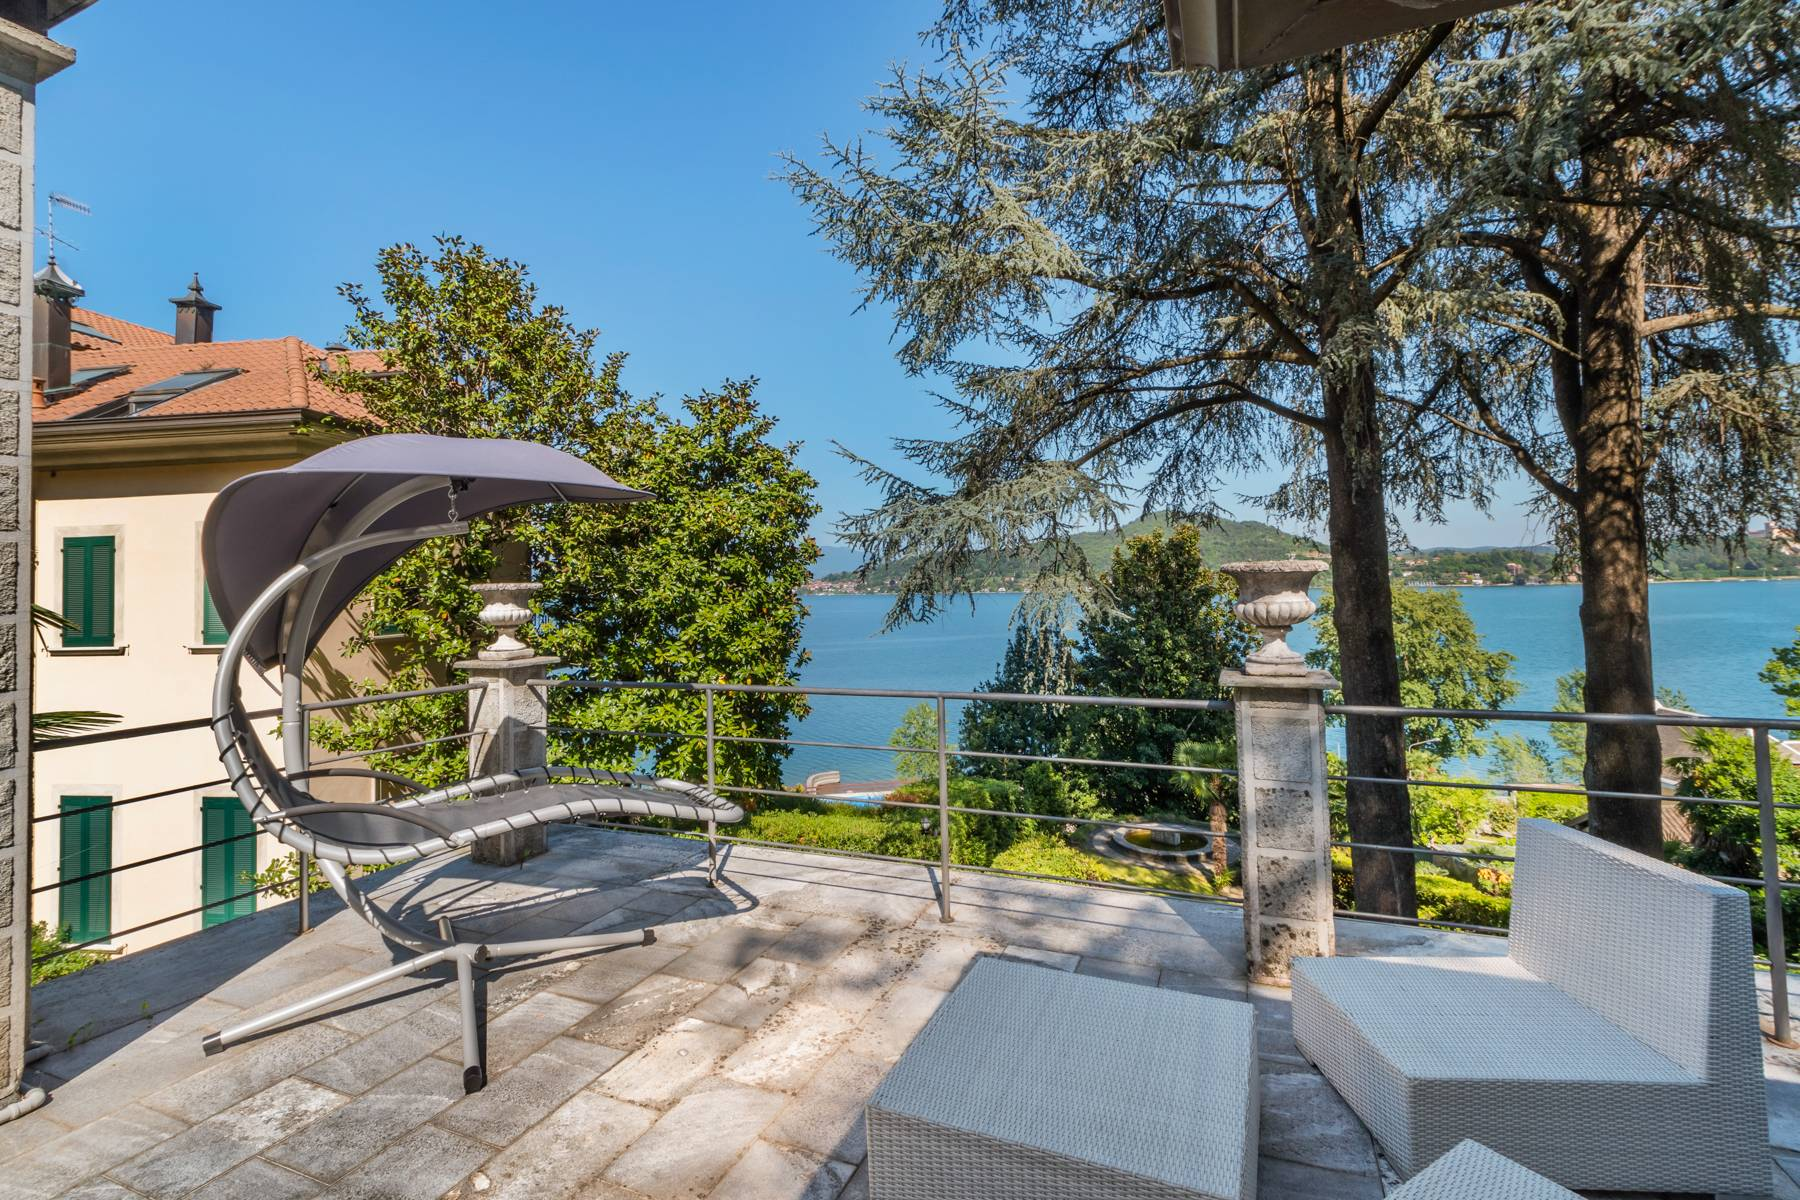 Other Residential Homes for Sale at Residential property for Sale in Meina (Italy) Meina, Novara Italy